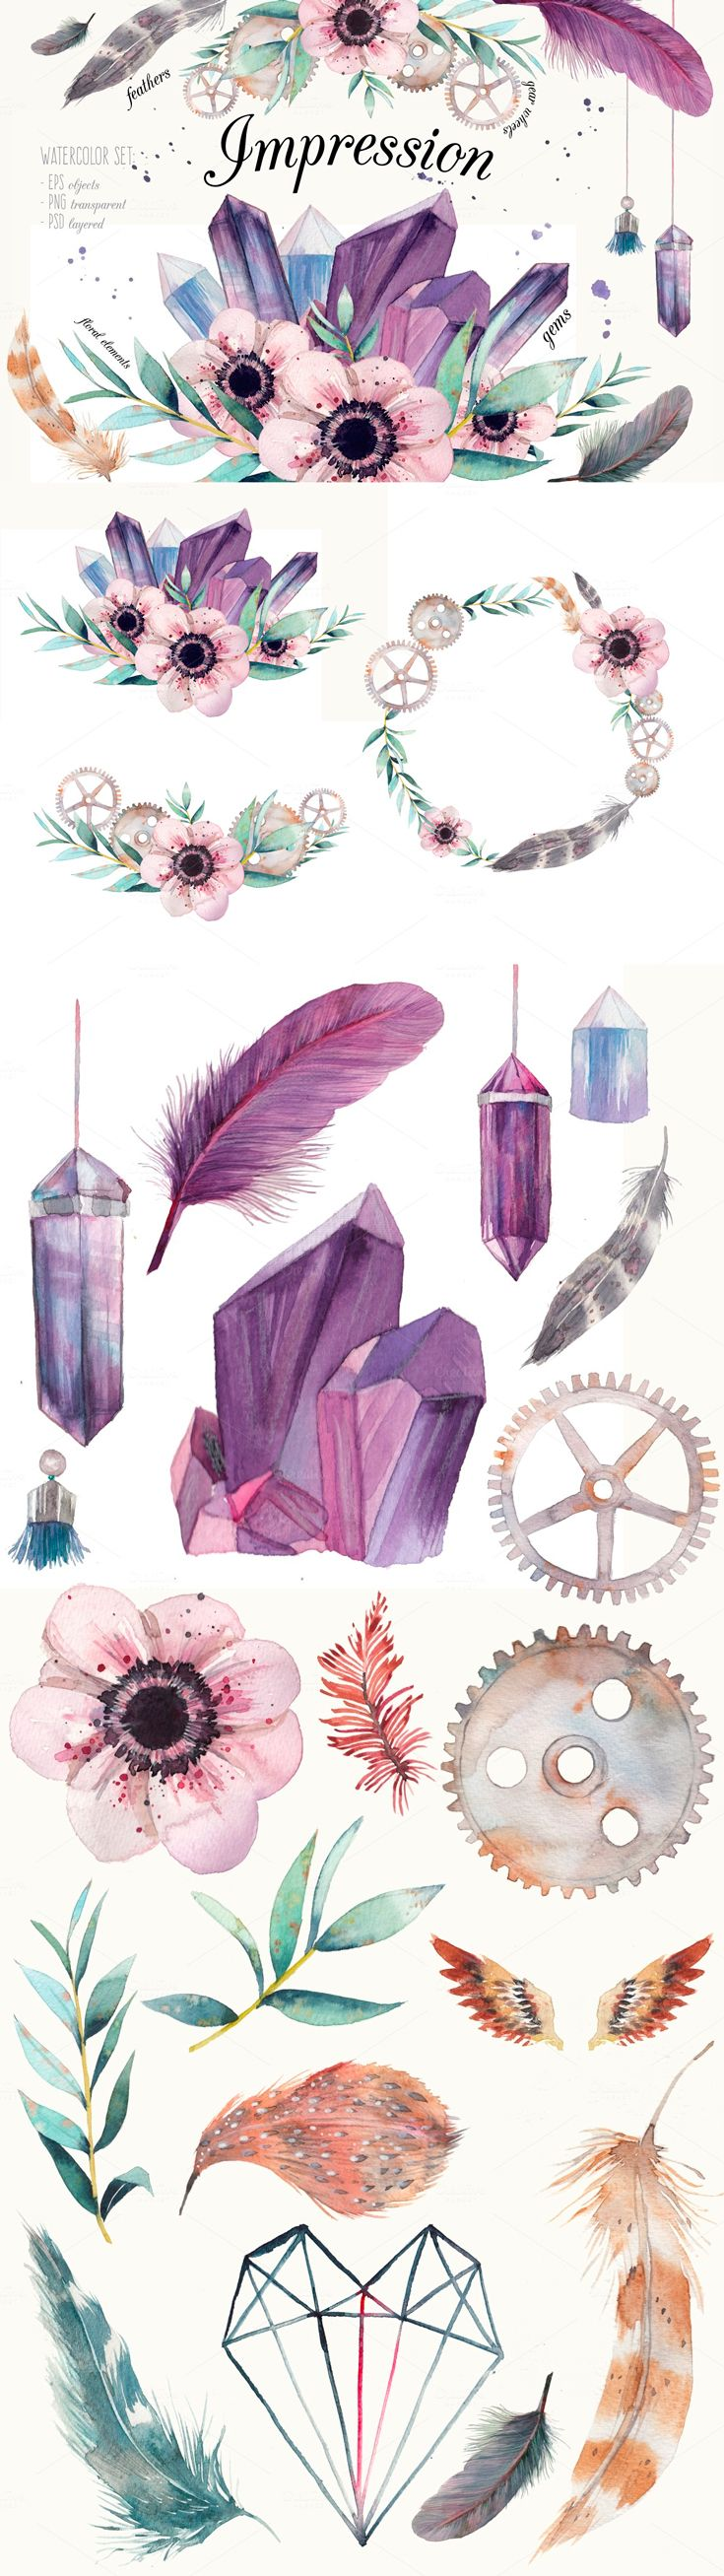 Clip Art Wedding Invitation Clip Art Gem Crystal Cluster Jewel Feather Floral Flowers Purple Floral Wreath Feminine Girly Gears Graphics Wedding Invitation Cute Anemone Pocket Scrapbooking / Project Life / Journaling / Memory Keeping